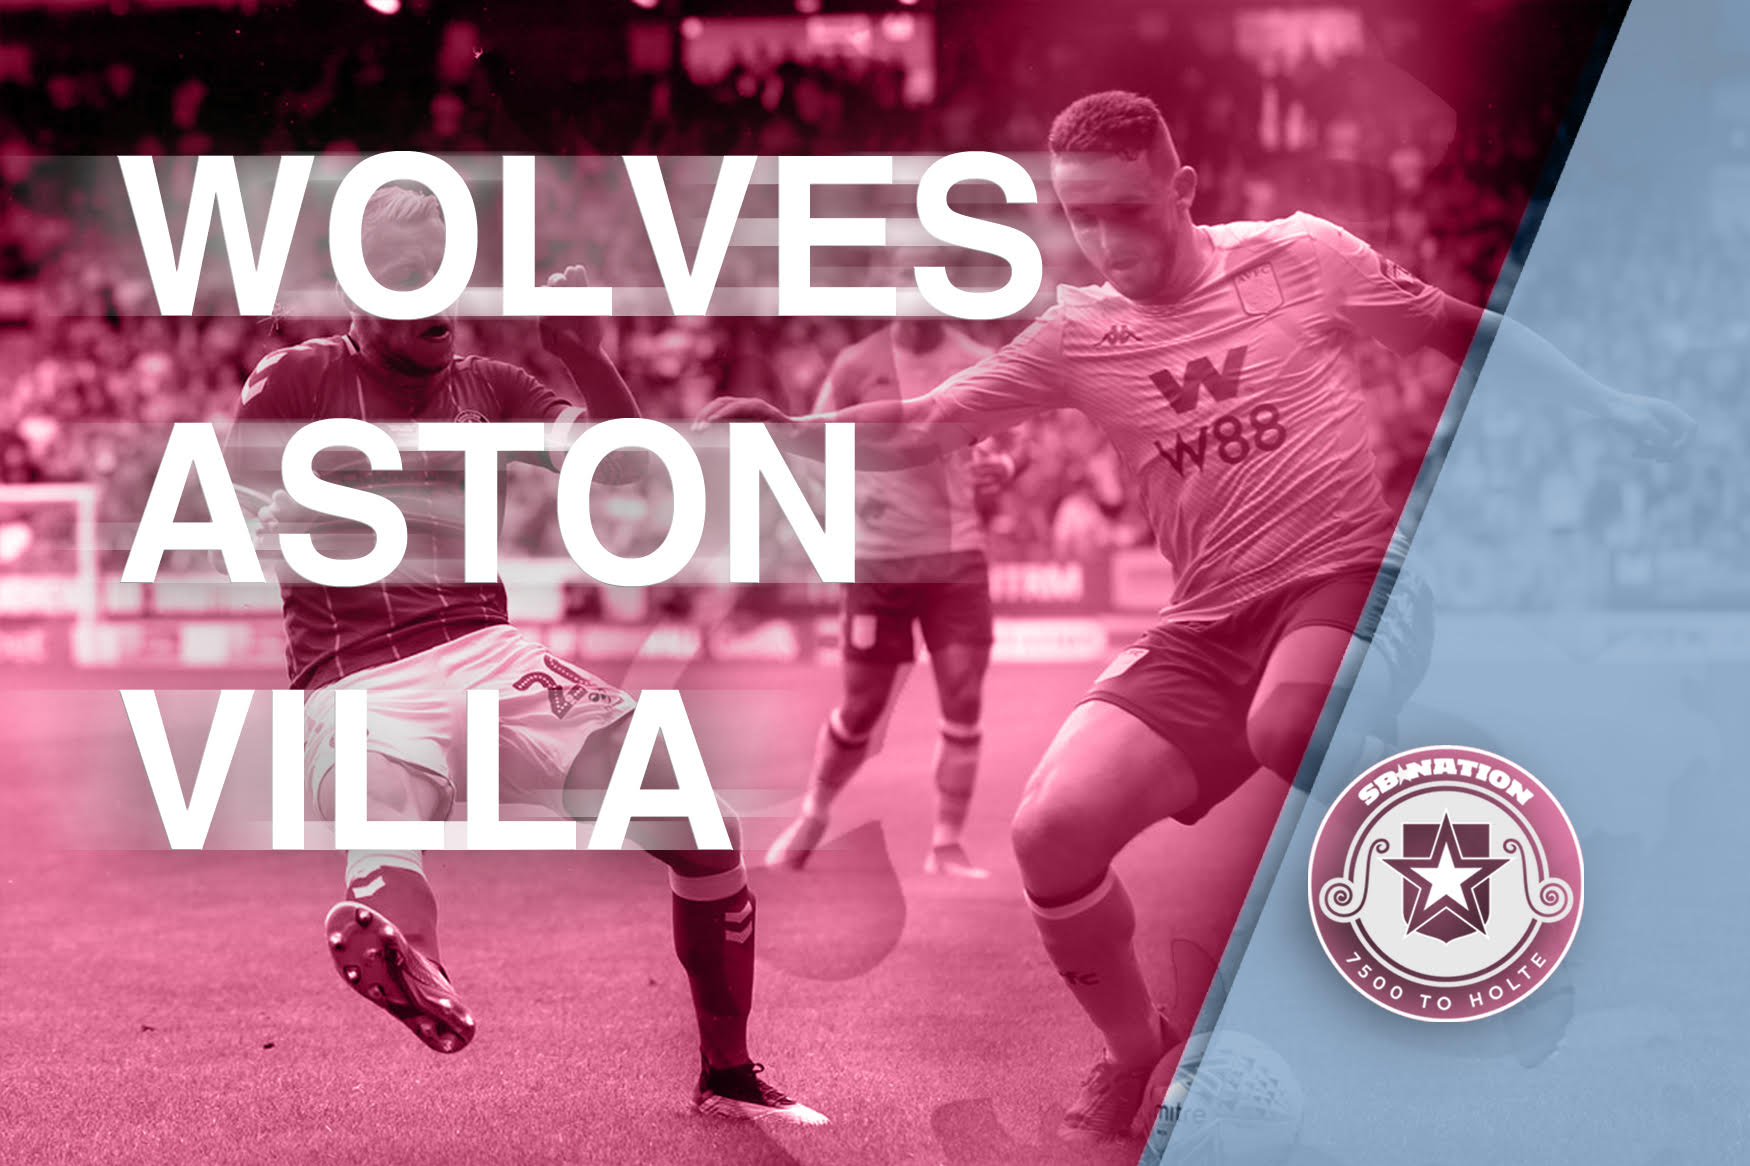 Wolves vs Aston Villa: live stream info and how to watch Premier League online